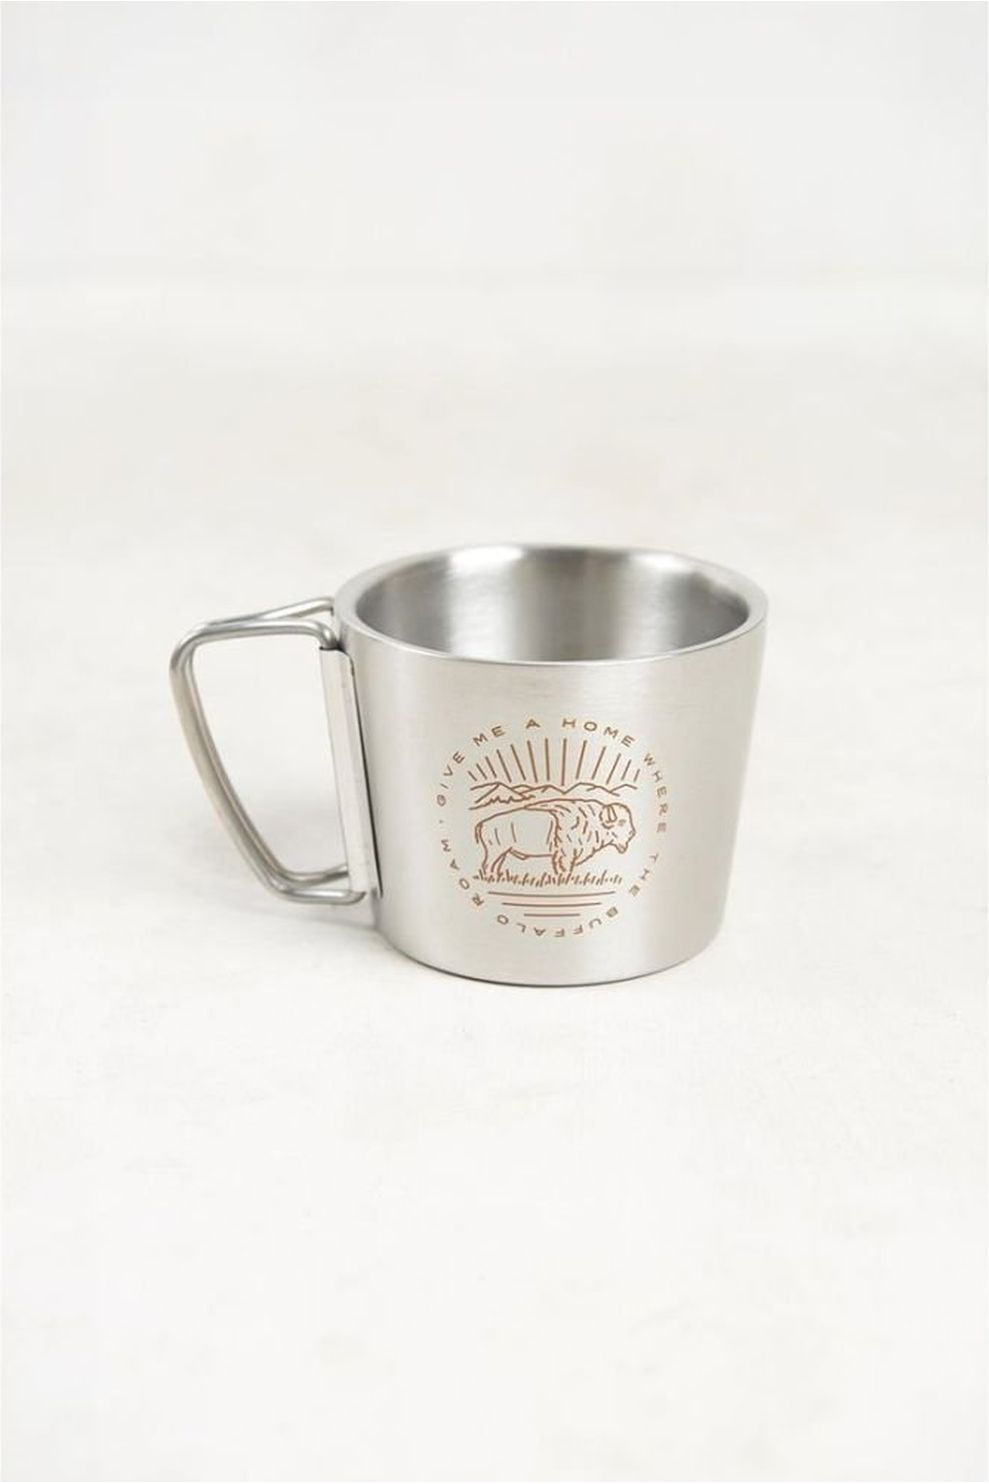 United by Blue Buffalo Roam 12Oz Stainless Steel Compass Cup - Grijs